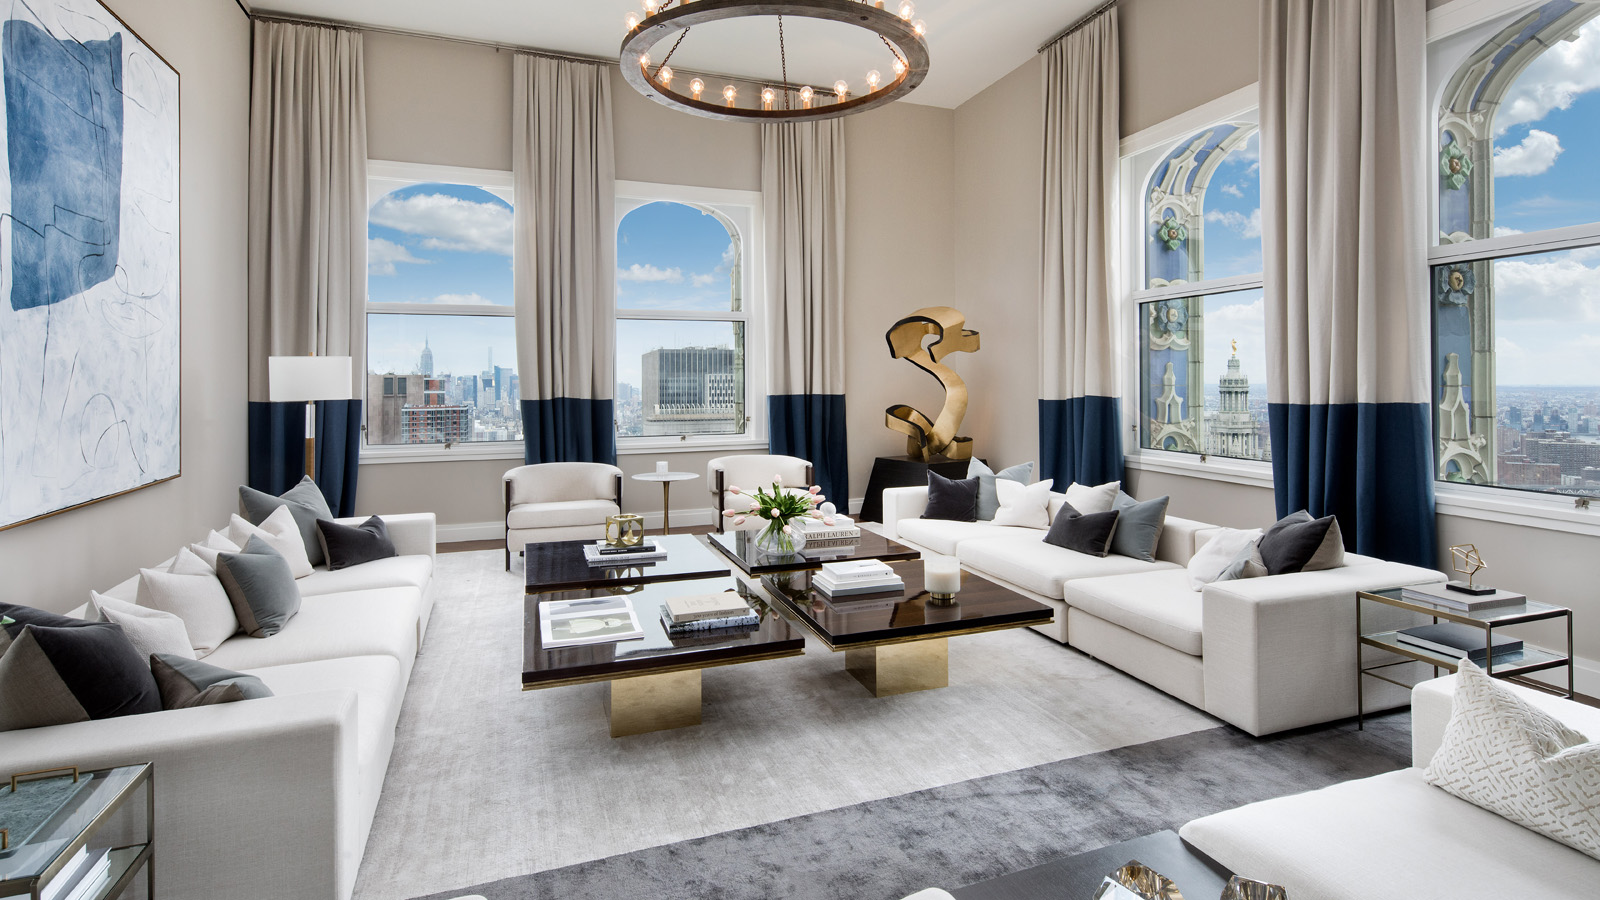 """Exhibiting a contemporary design aesthetic, the top 30 floors of the historic Woolworth building are currently offering one-to-four bedroom residences starting at $3.875MM. The building, transformed by the famed French architect, Thierry W Despont into The Woolworth Tower Residences, still remains unprecedented in size and sophistication and an elegant jewel in the skyline of downtown Manhattan.  Inside the residences, elevated ceilings, solid oak herringbone flooring, and expansive floor plans ensure a coveted, luxurious, and convenient living. The oversized windows of these residences are framed by Terra Cotta facade detailing and offer cinematic views of the surrounding cityscape and waterways.  Carefully-curated amenities for residents include a lounge, a 24-hour doorman, restored Woolworth swimming pool, gym, bike room, full-time on-site concierge and on-site parking. The residences are especially meticulously detailed to provide a cocooned lifestyle that caters to the needs and taste of any New Yorker.   CITY REALTY ARTICLE   The Woolworth Tower Residences comprise 33 condominium apartments at the top of the 60-story Woolworth Building at 233 Broadway facing City Hall Park.  The 792-foot-high building is one of the world's most famous skyscrapers and was the tallest in the world when it was built in 1912. It held that title until it was surpassed in 1930 by the Chrysler Building, which lost the title 18 months later to the Empire State Building.  Known as the """"Cathedral of Commerce,"""" it was designed by Cass Gilbert, who also designed the sumptuous United States Custom House at the foot of Broadway.  It abounds in Gothic-style tracery and Philip Johnson, the architect, told Carter B. Horsley, when he was at  The New York Times , that it was his favorite skyscraper.  The residential portion of the building has a 2 Park Place address.   CONTACT US FOR MORE INFORMATION ABOUT THIS AND OTHER NEW DEVELOPMENTS IN NYC, BROOKLYN & QUEENS     The building was designated """